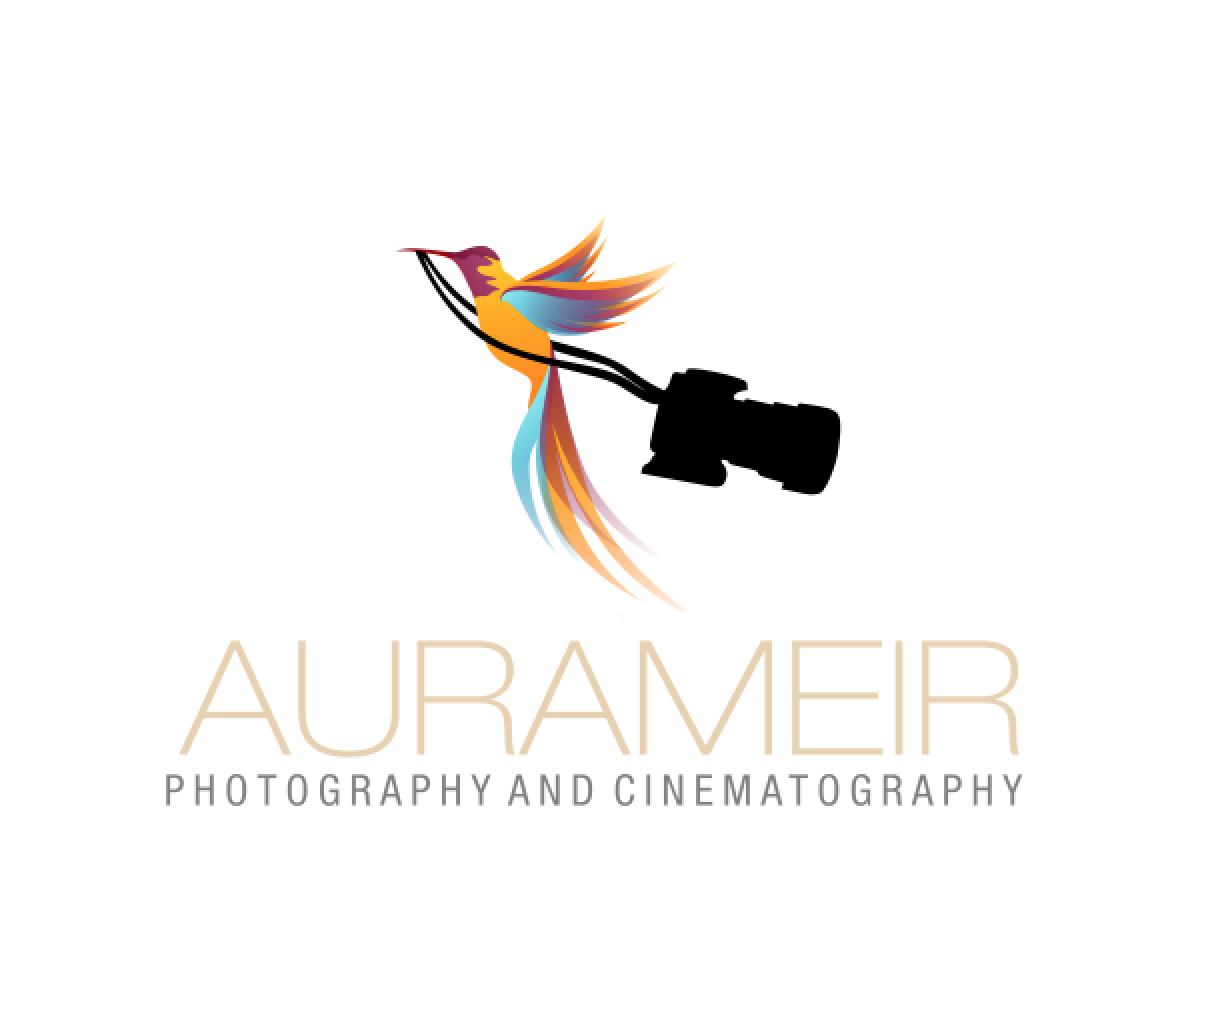 17 photography business logos images photography for Designing company